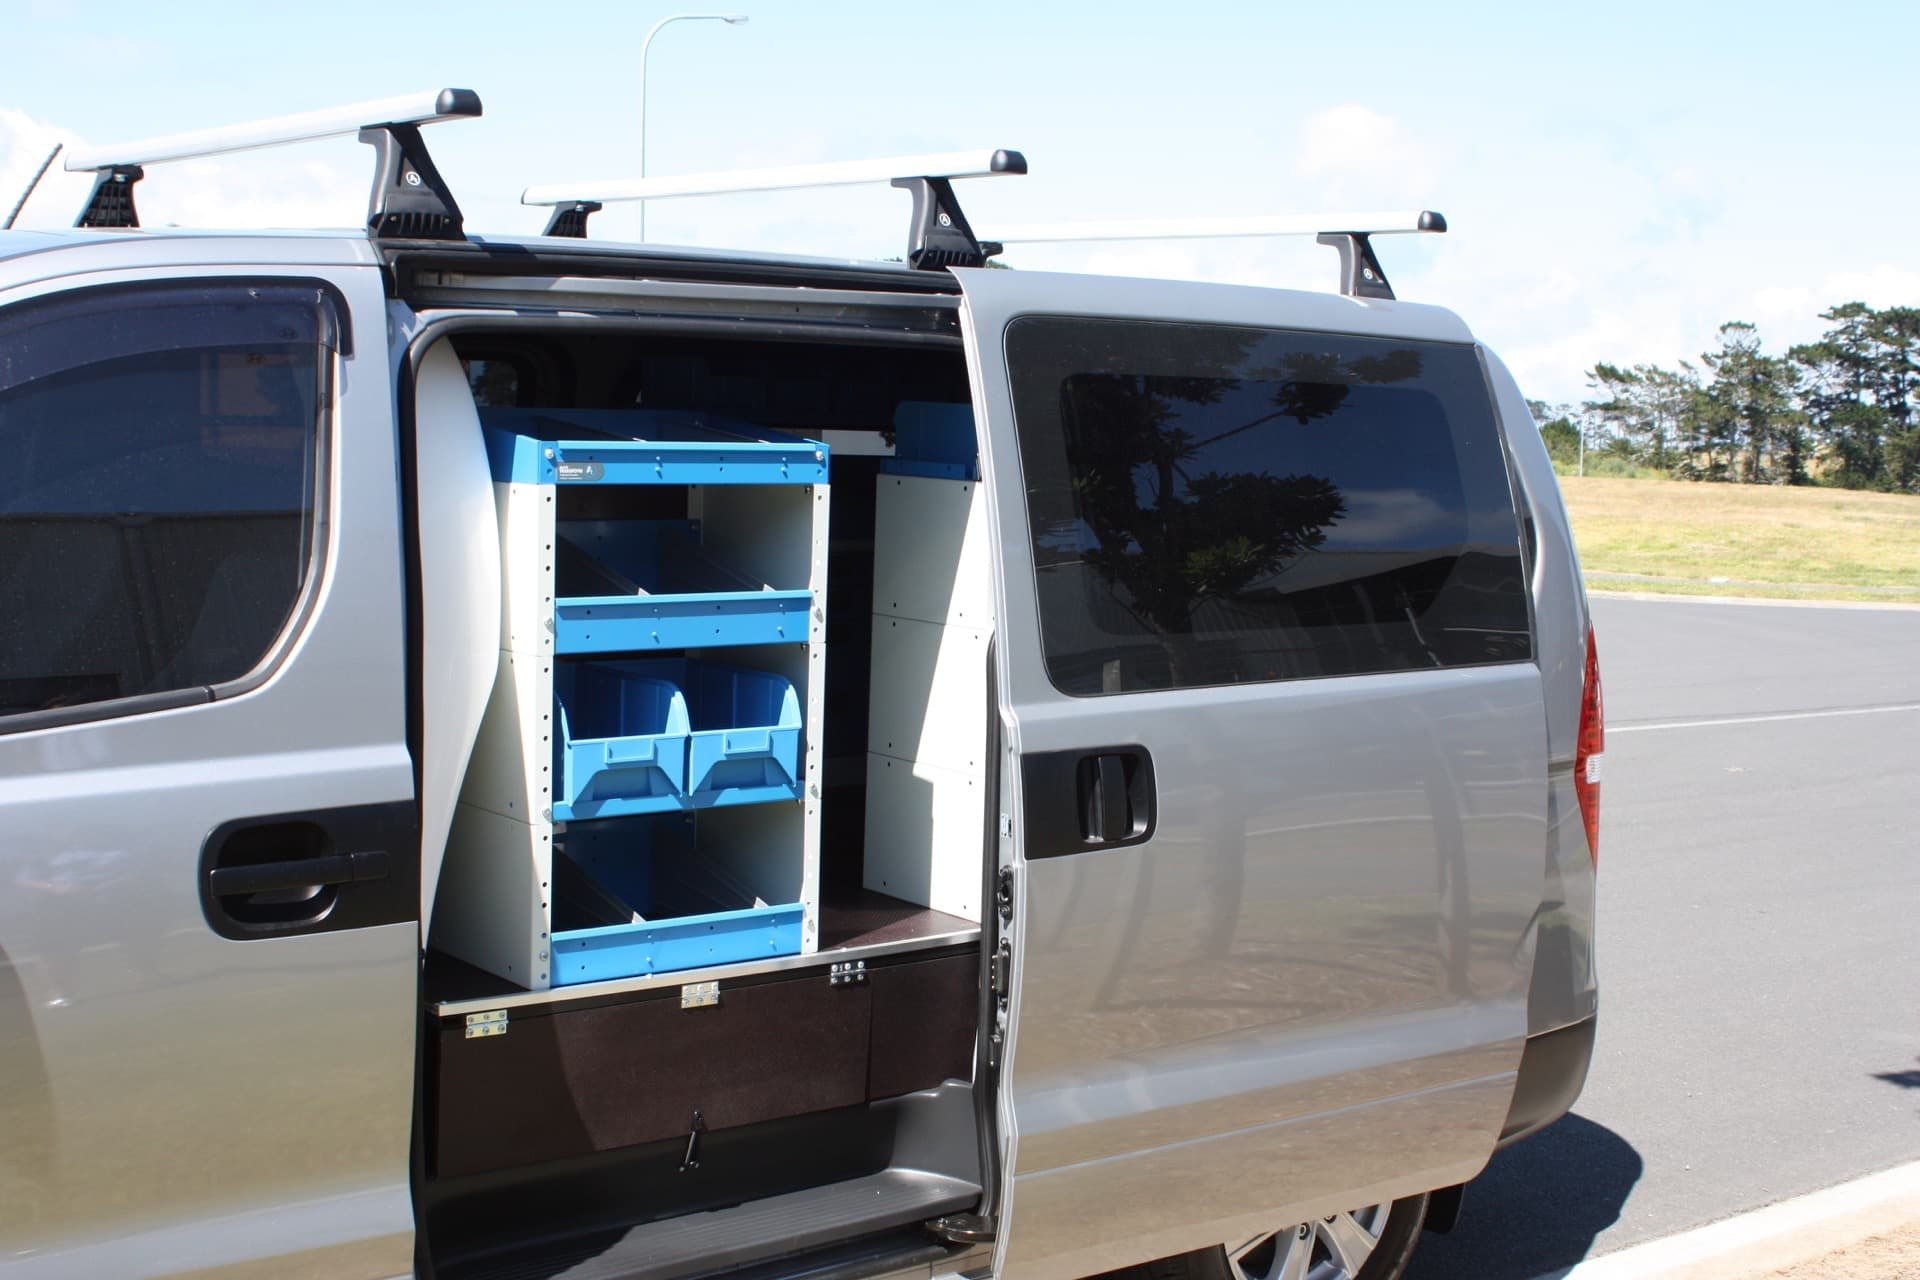 Commercial van fitout with modular set of drawers